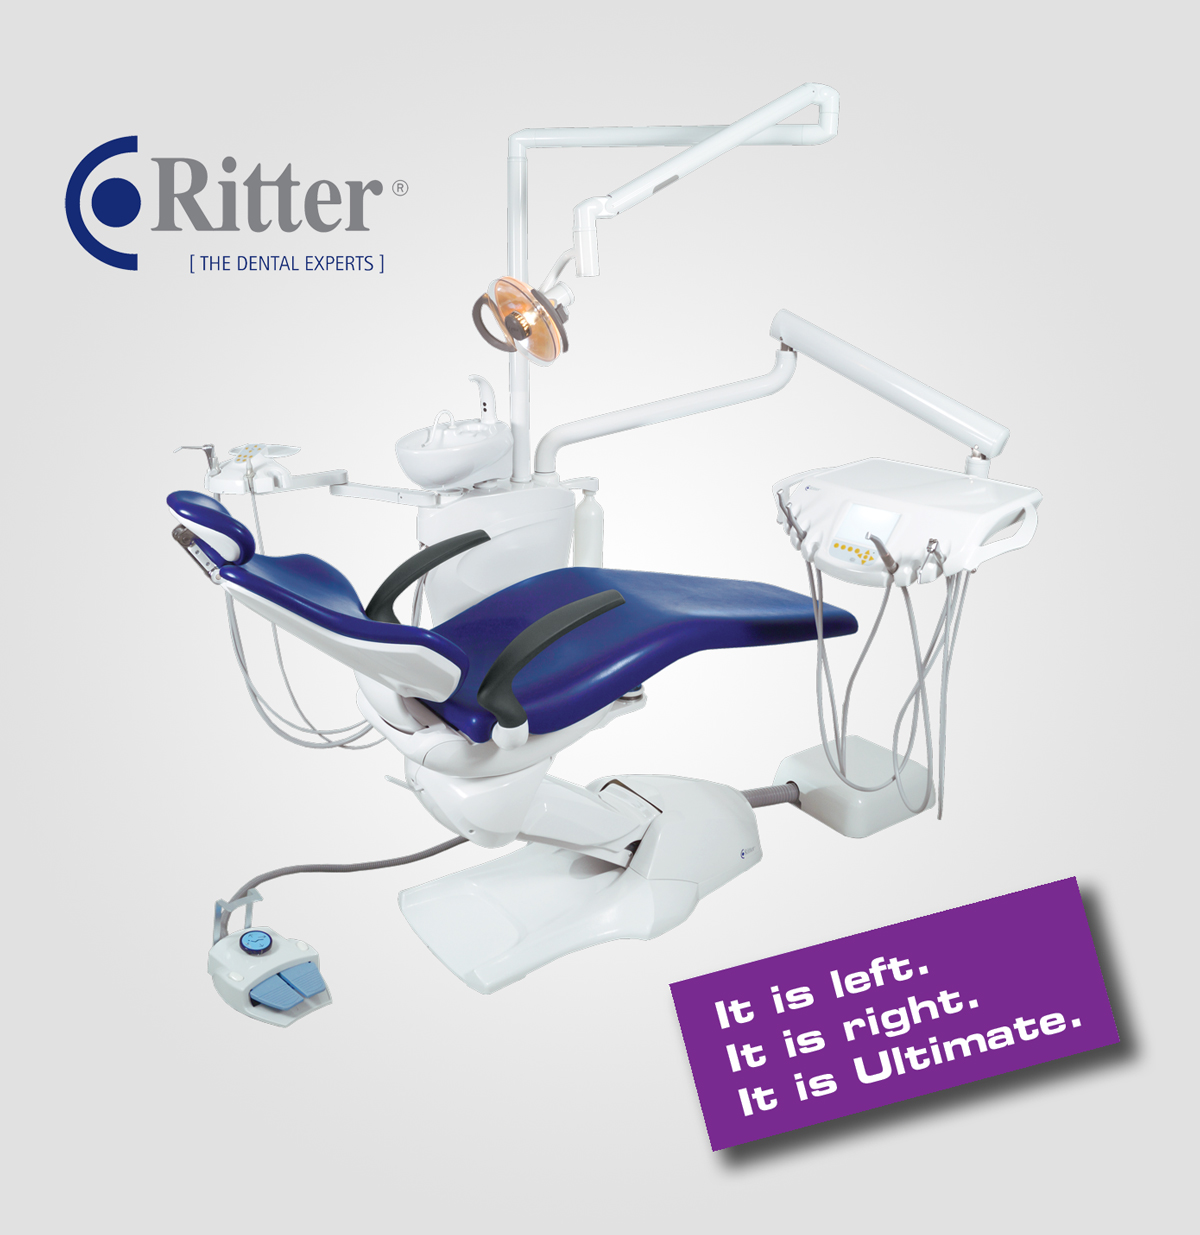 Ritter Germany | Dental Supplier South Africa - Inter Africa Dental